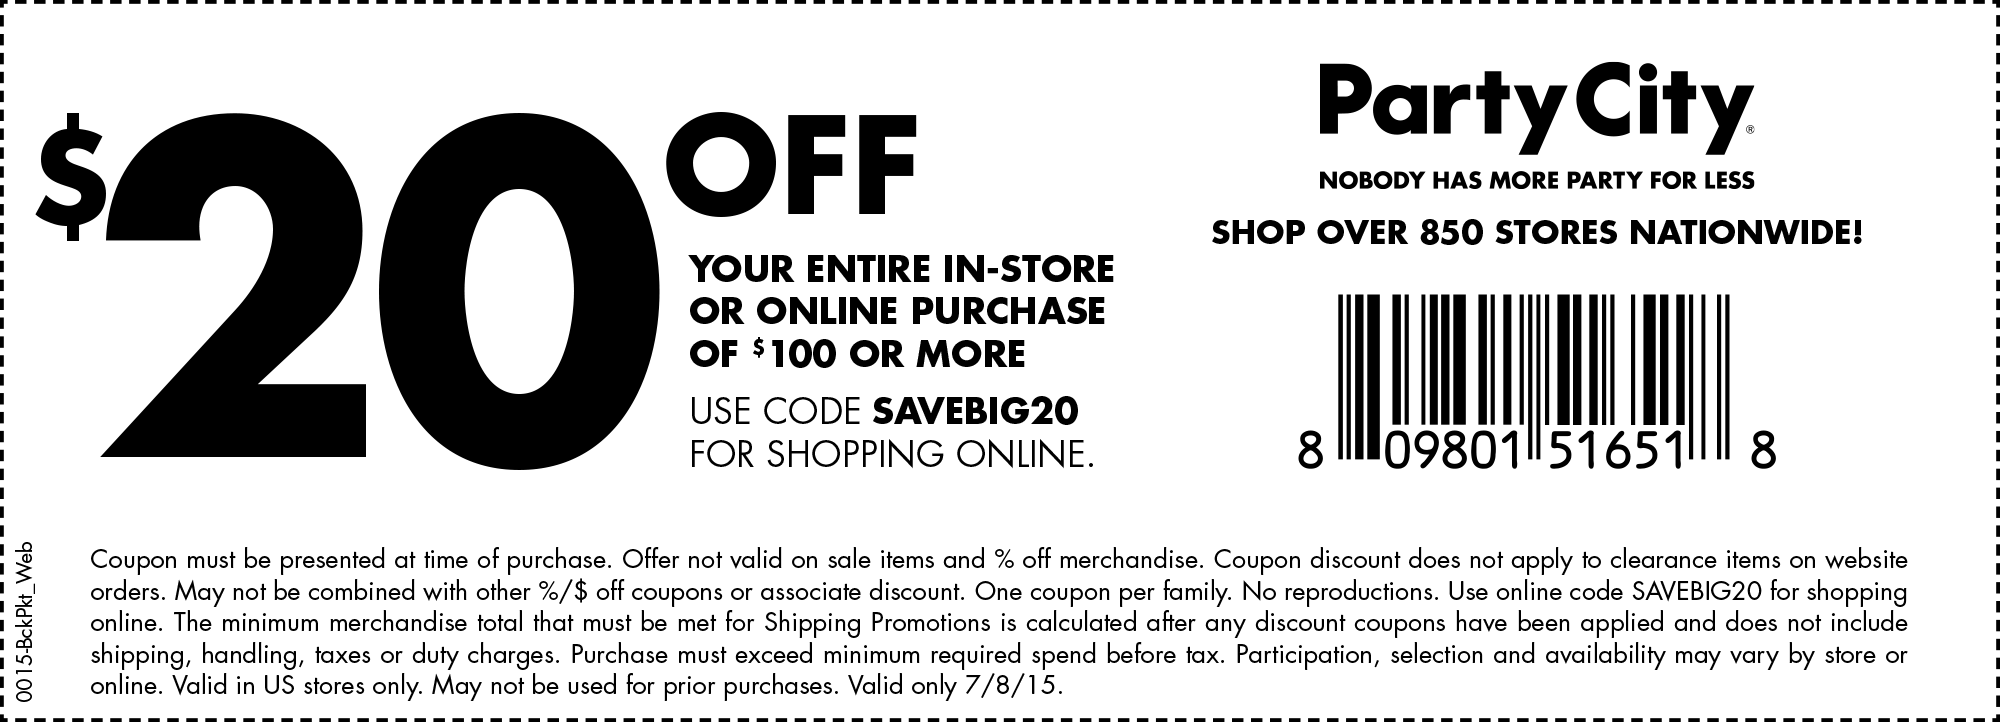 Party City Coupon May 2019 $20 off $100 today at Party City, or online via promo code SAVEBIG20